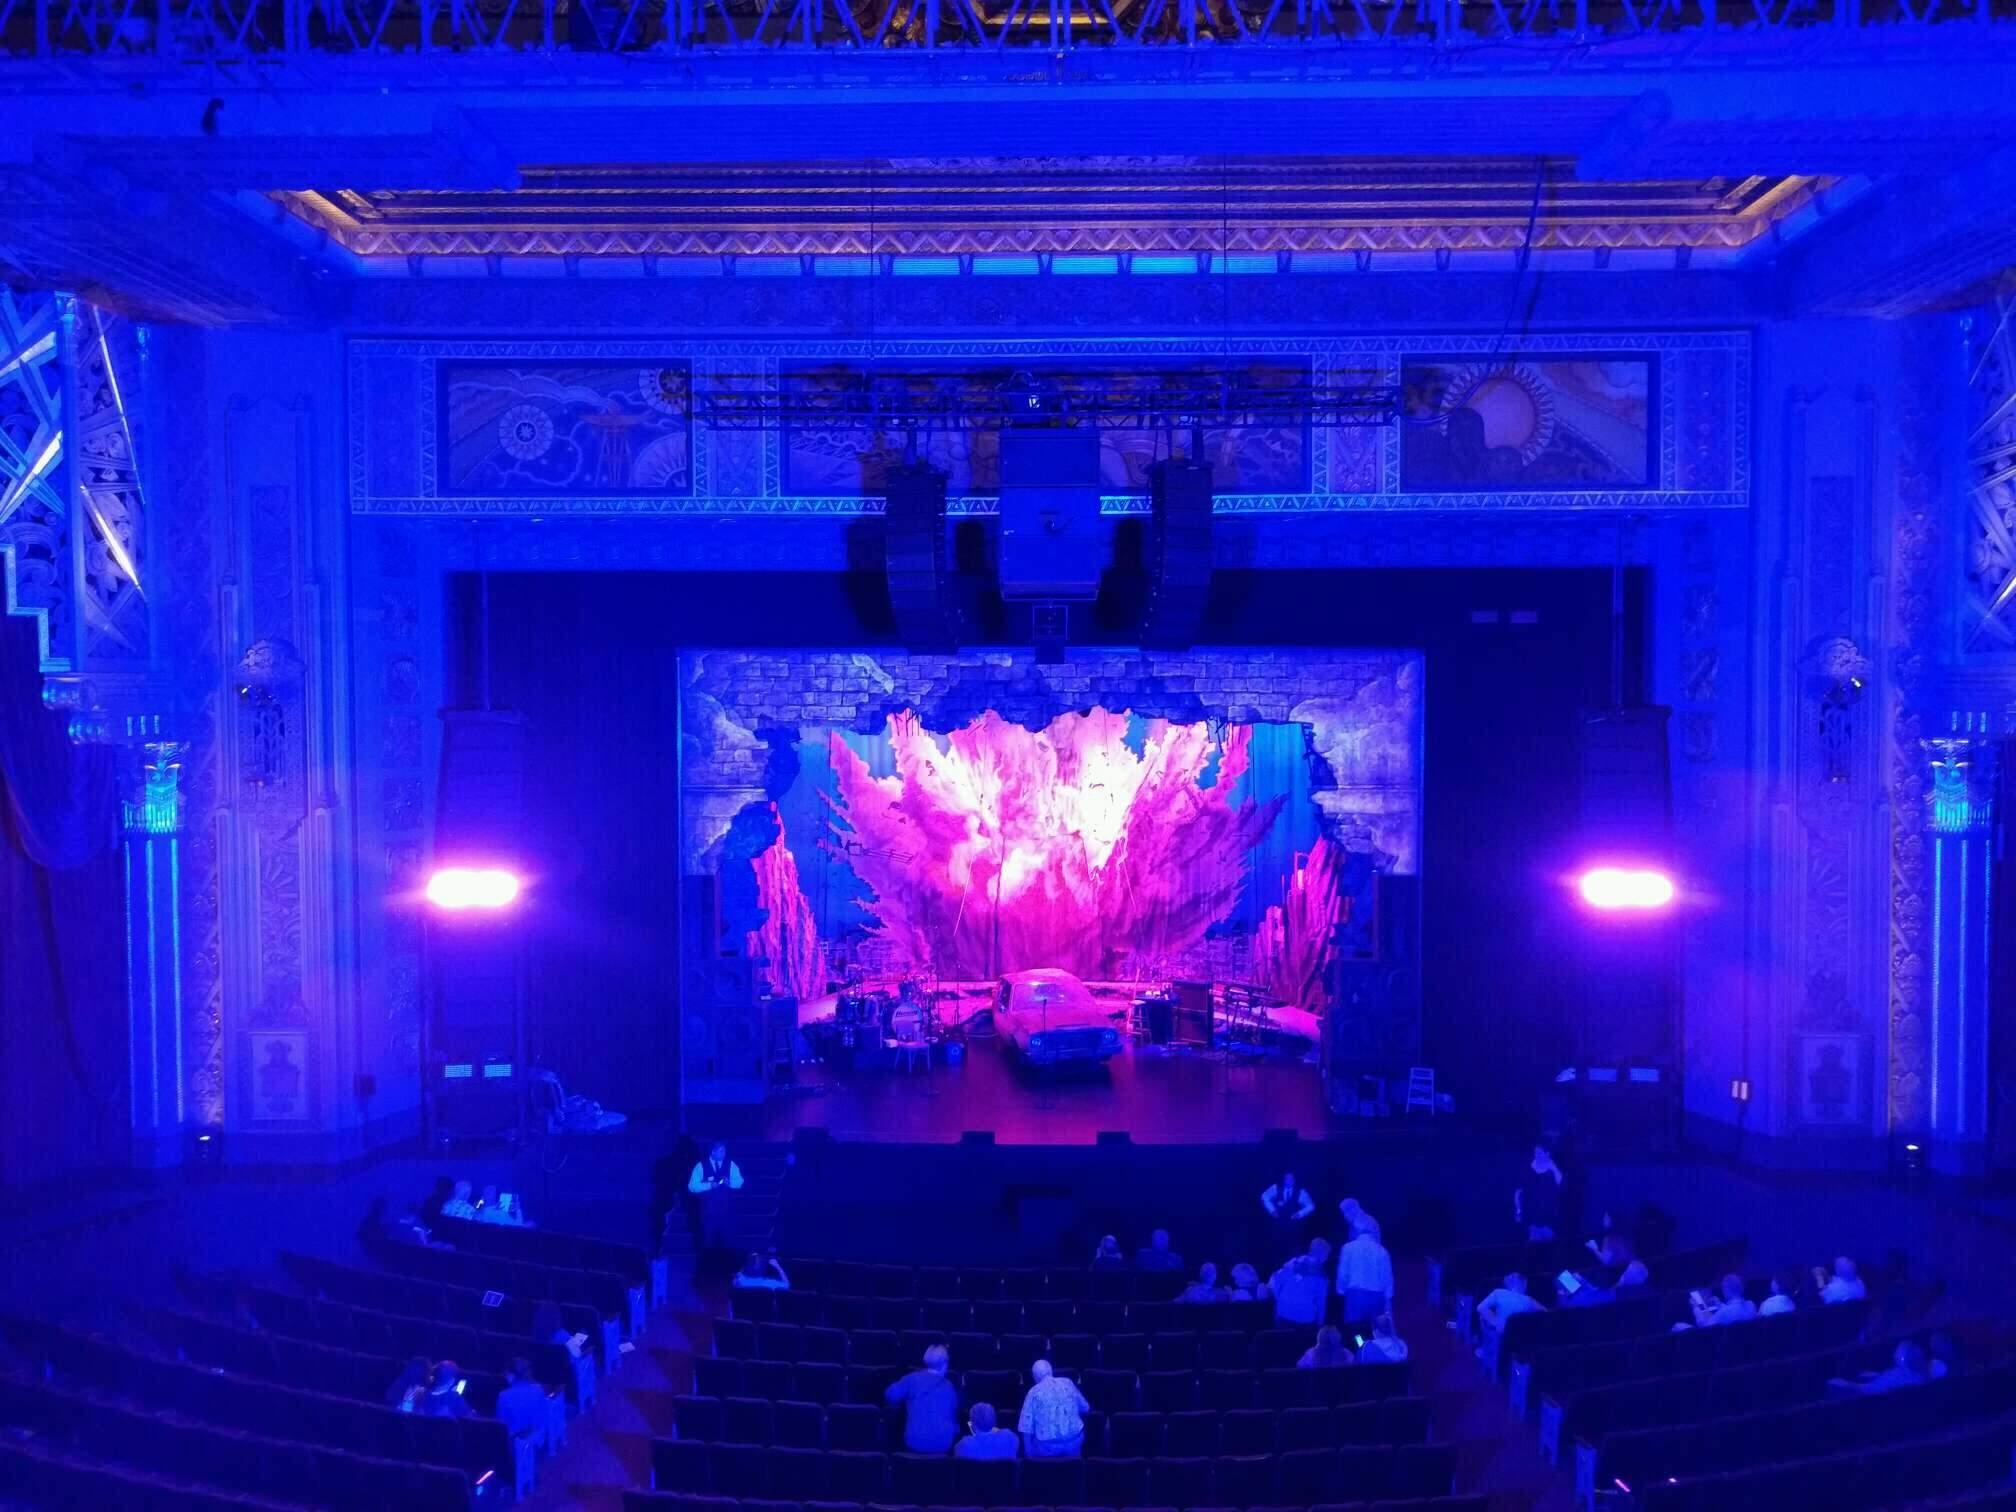 Hollywood Pantages Theatre Section Mezzanine C Row b Seat 107